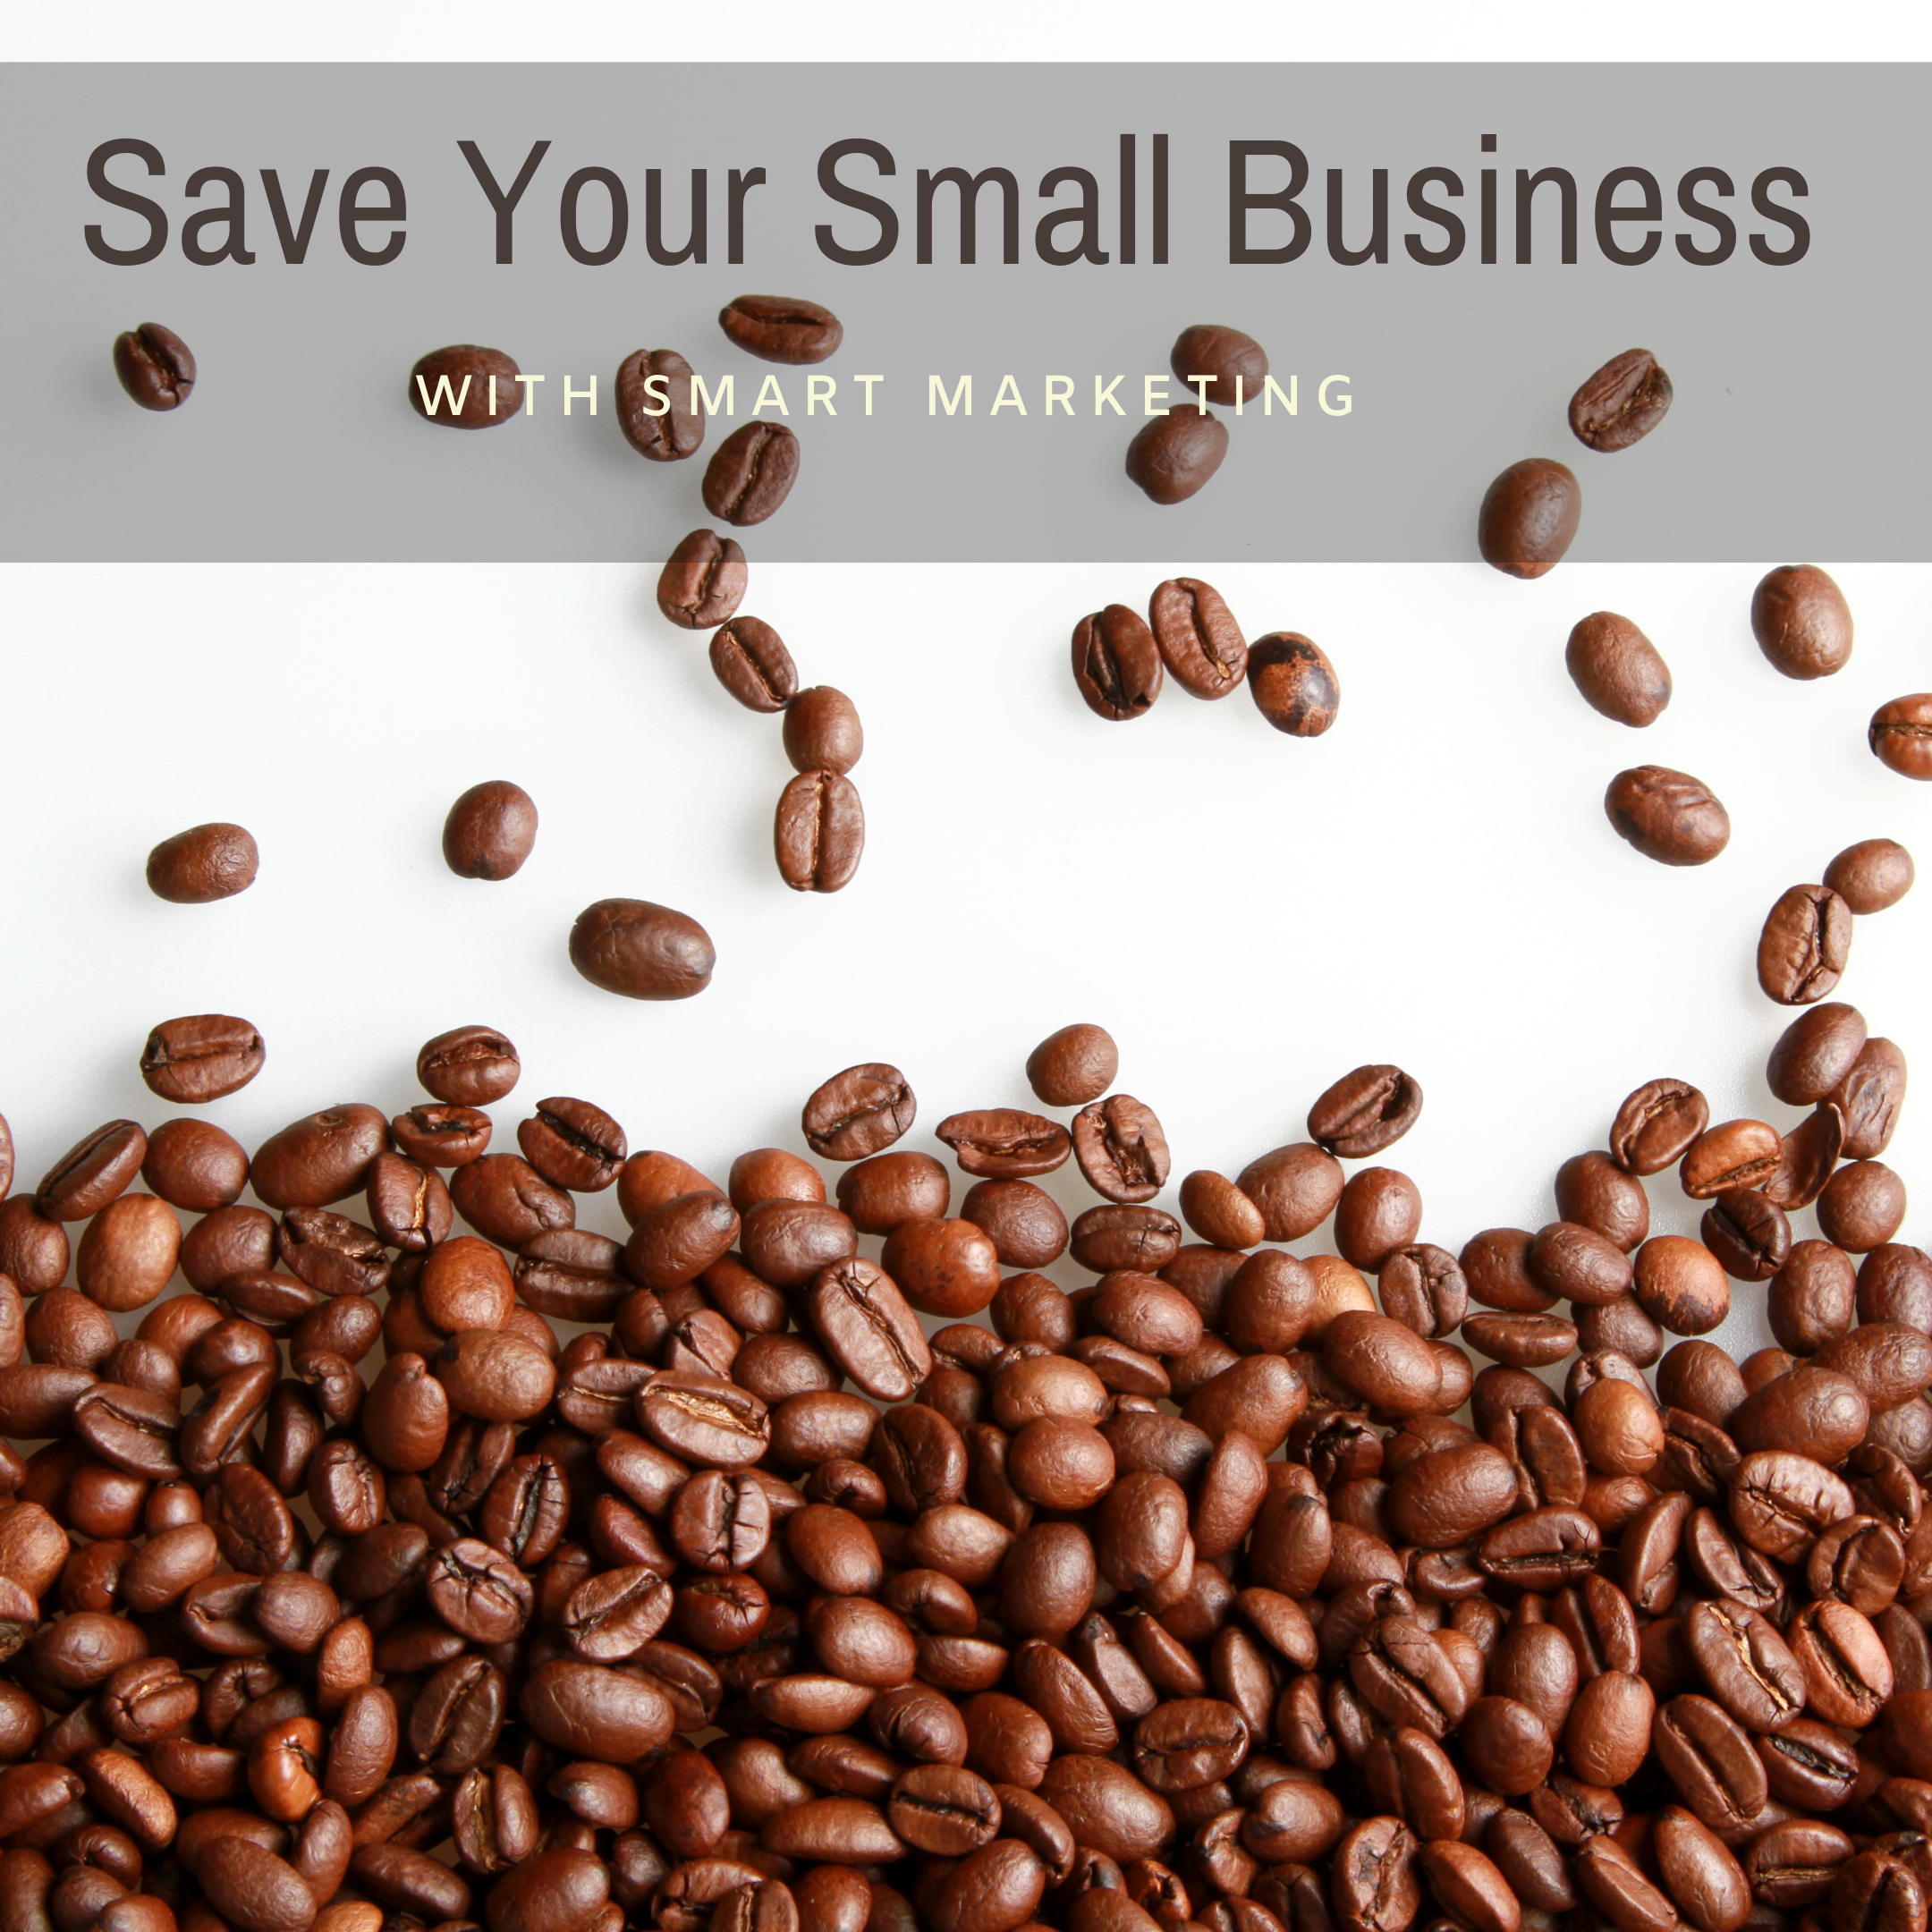 save-your-small-business9.png